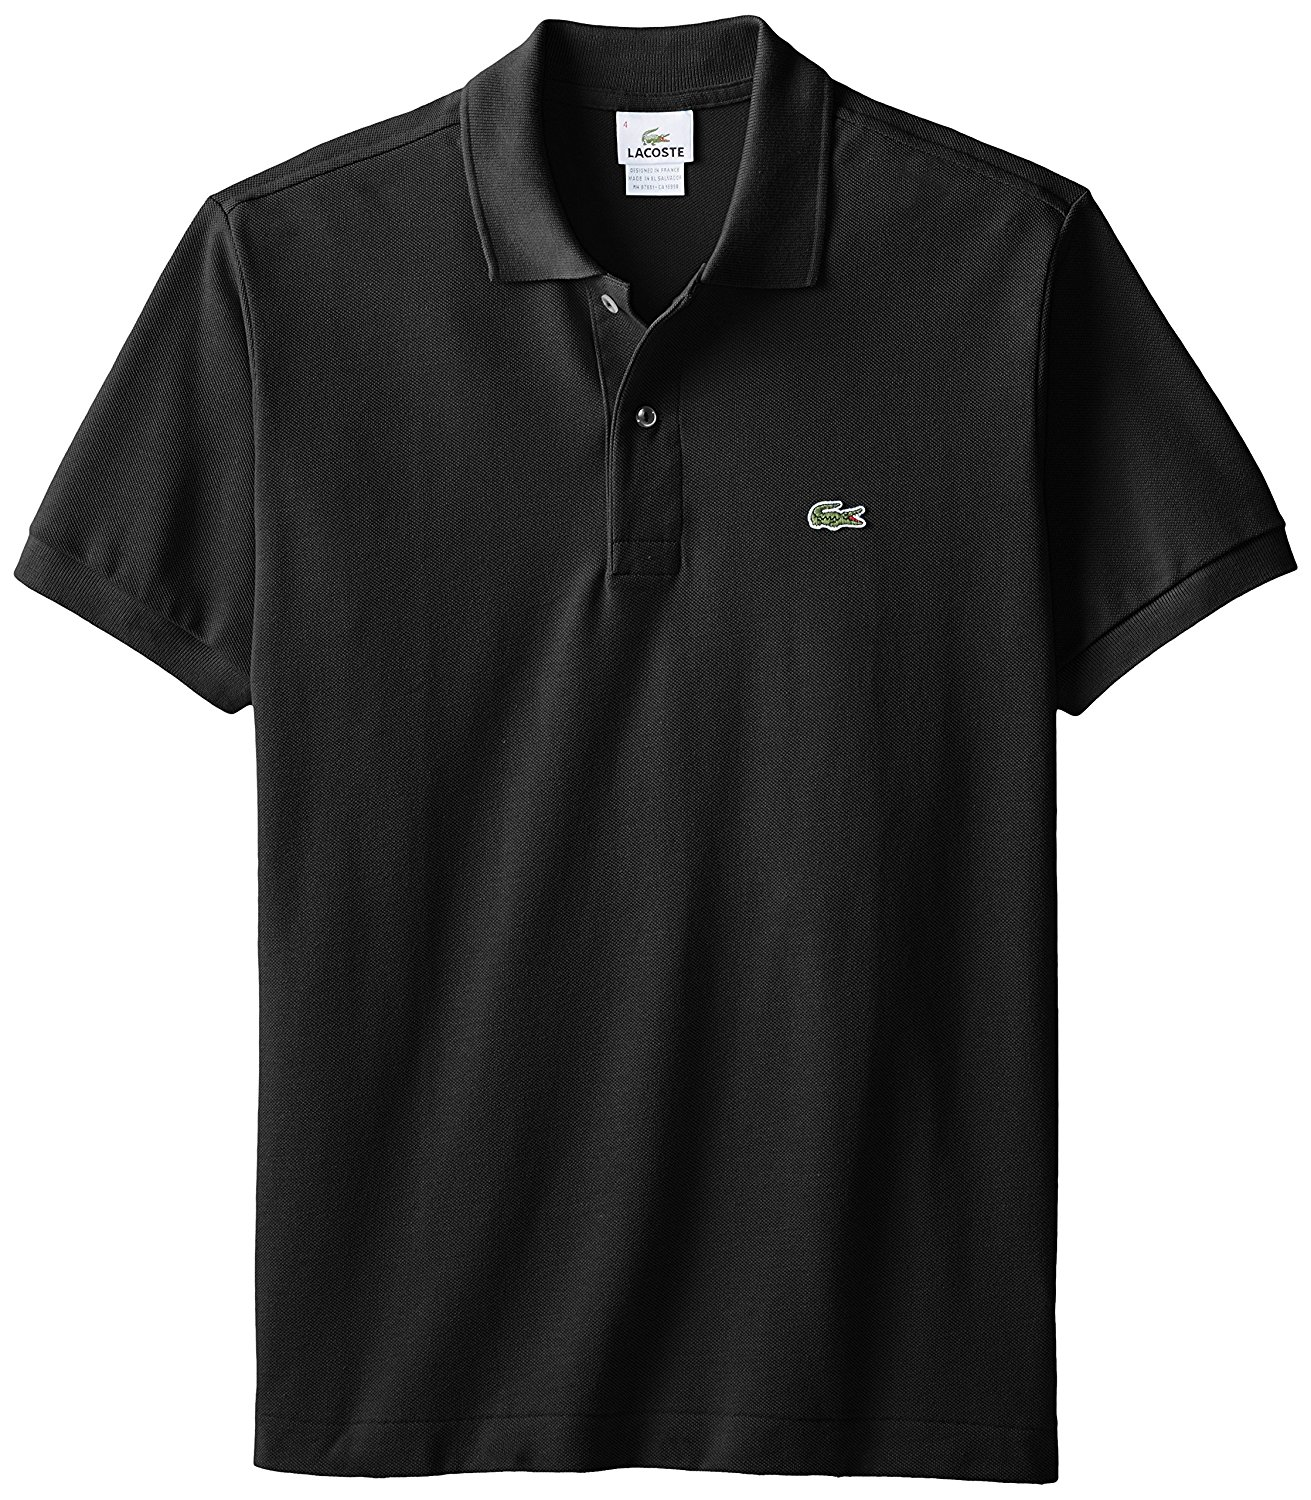 Lacoste polo shirt ... picture 2 of 2 DROCTYA